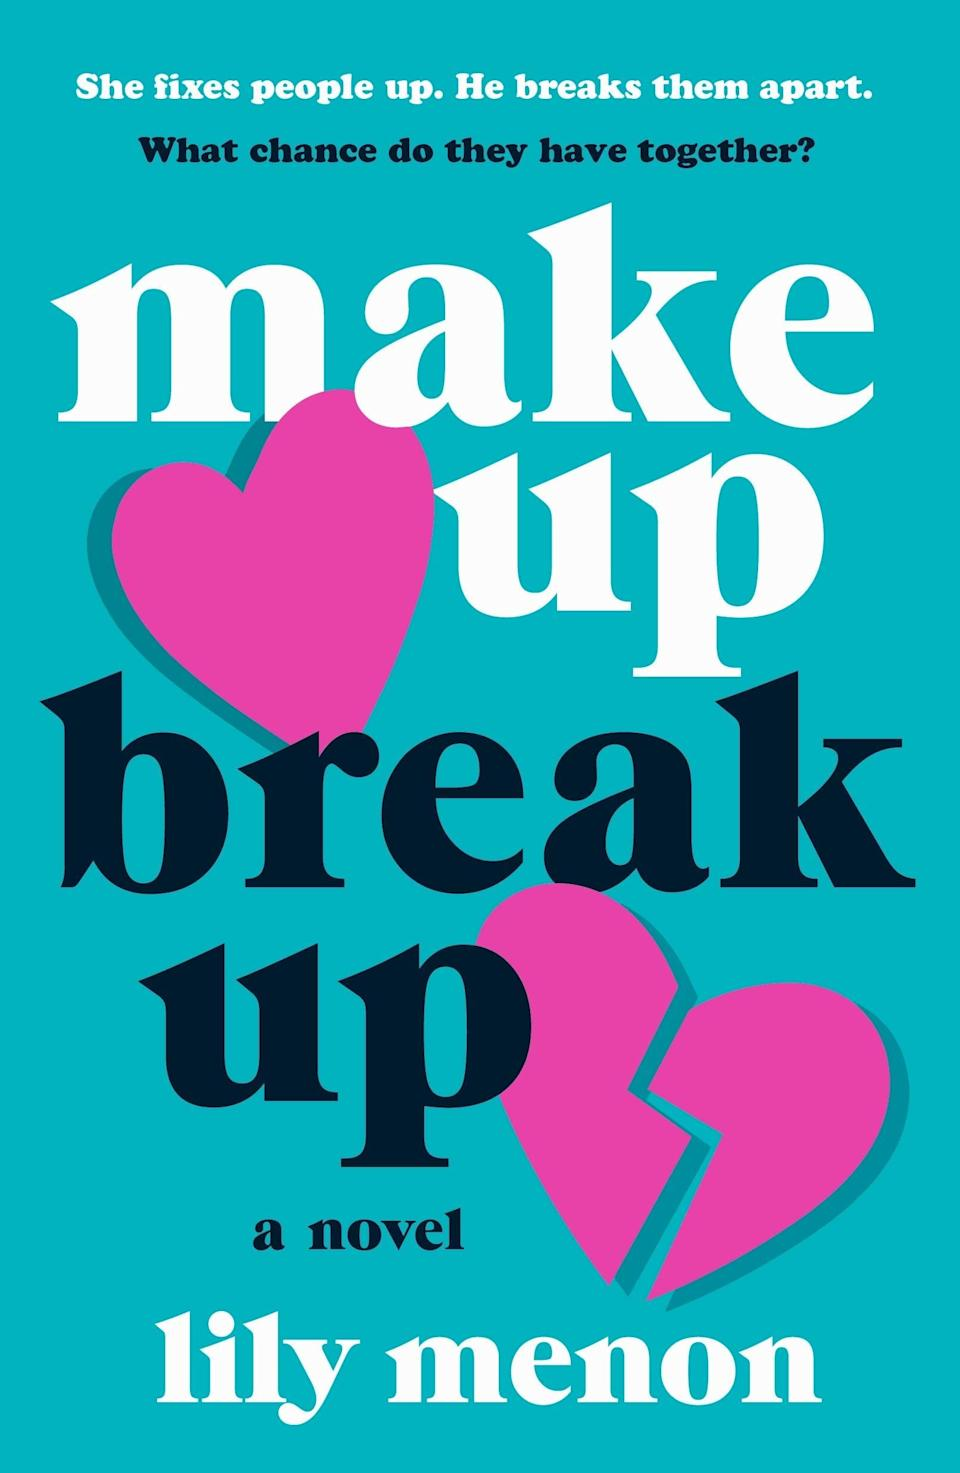 <p>Lily Menon, who has already made a splash in the world of YA romance where she writes as Sandhya Menon, is releasing her first adult rom-com this month, and romance fans should be excited. <span><strong>Make Up Break Up</strong></span> follows Annika Dev, who created an app to help keep people together, and Hudson Craft, who made an app to facilitate quick break ups. In theory, these two have nothing in common, but sparks fly when they meet. </p> <p><em>Out Feb. 2</em></p>